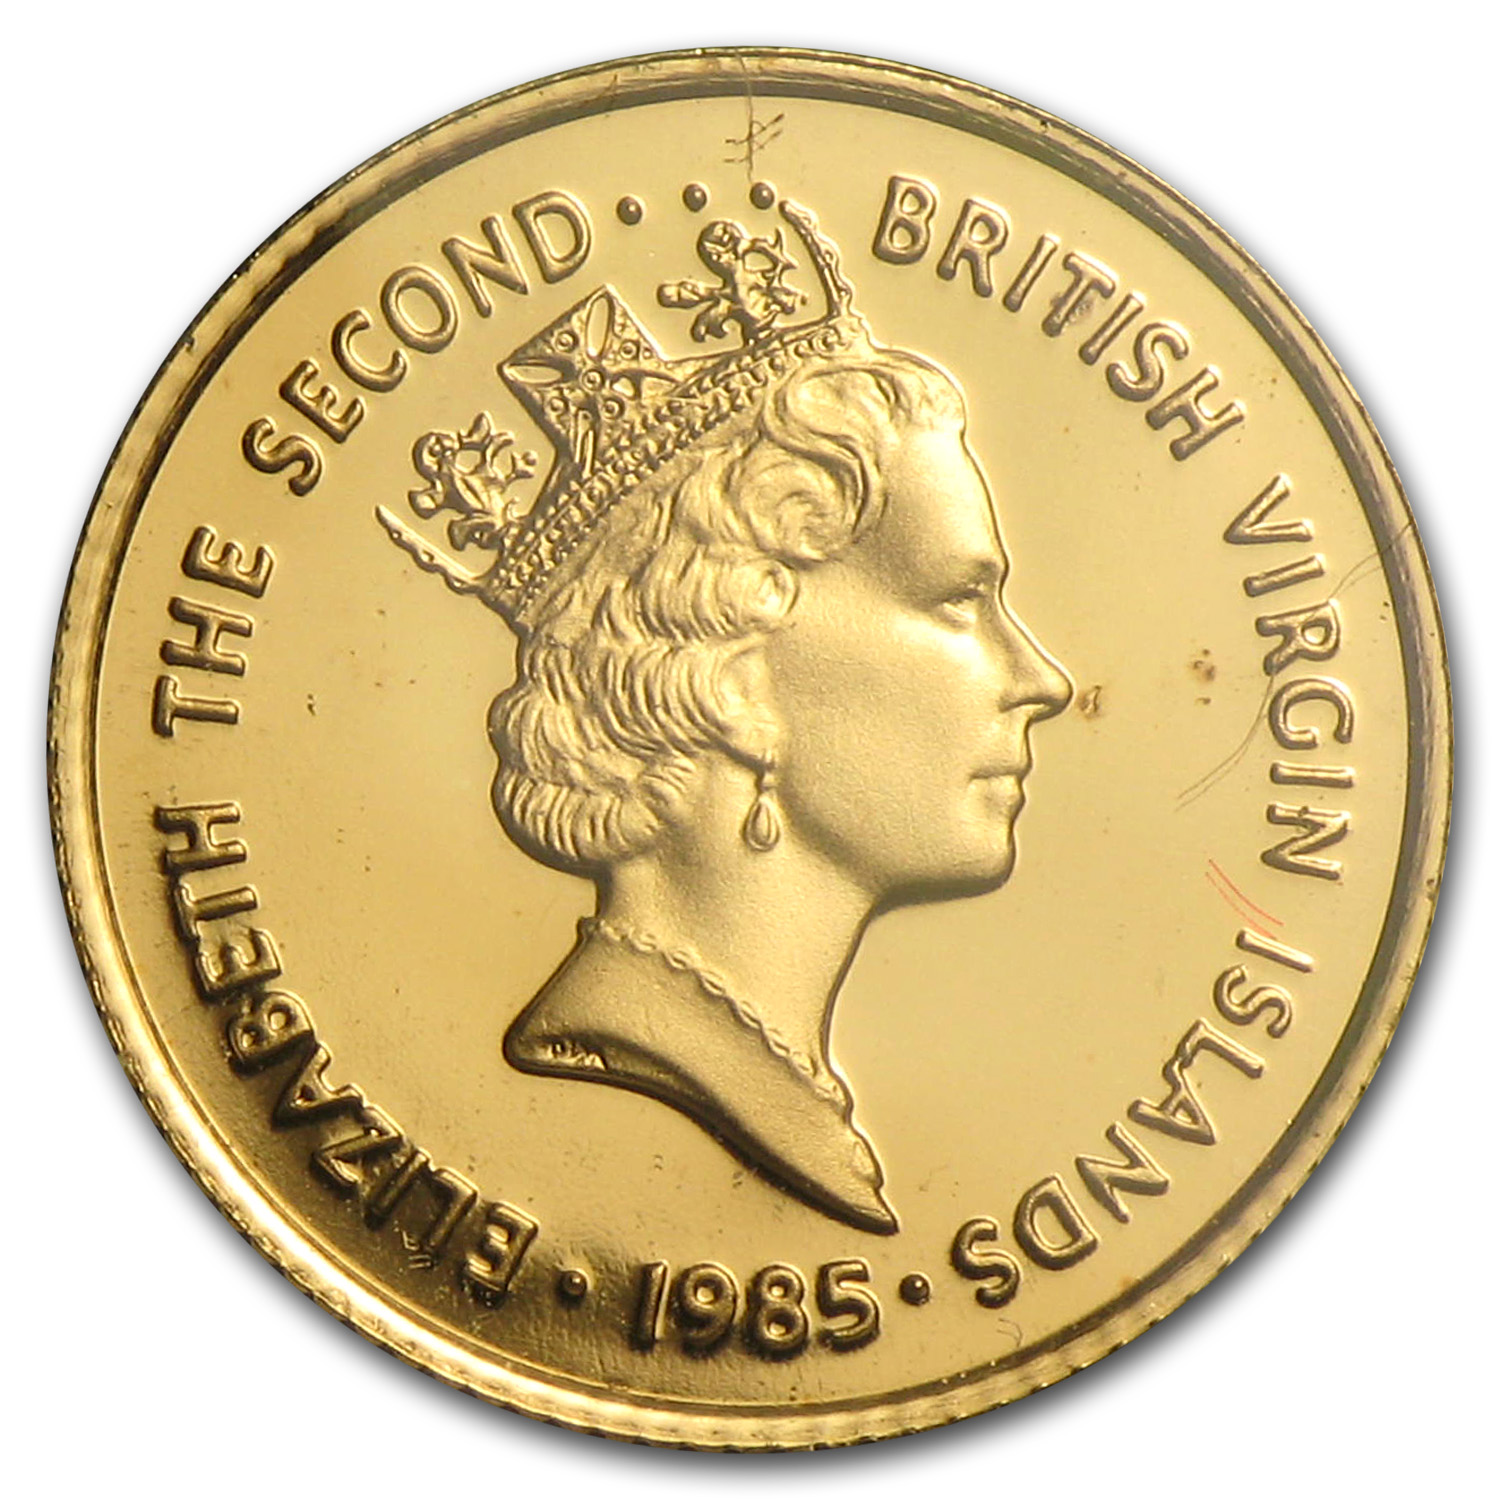 British Virgin Islands 1985 Gold 25 Dollars Proof